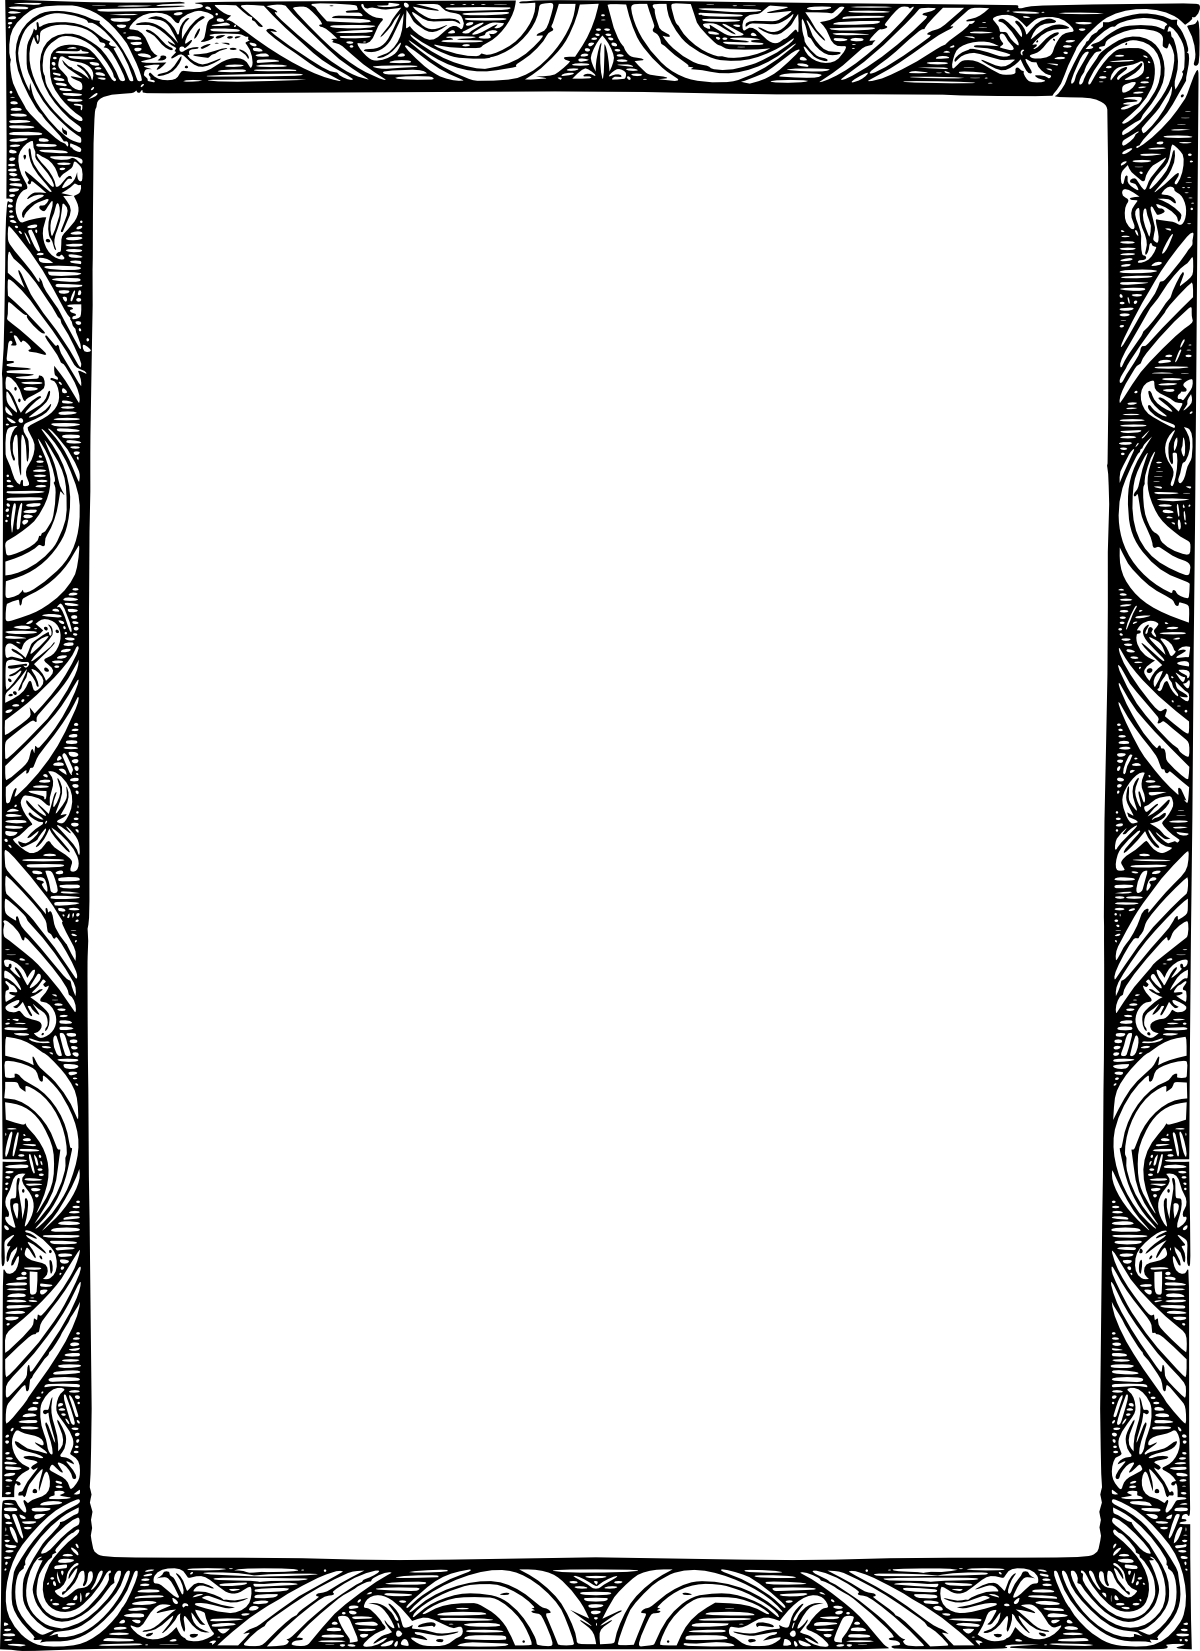 Rectangle border png. Bildergebnis f r transparent